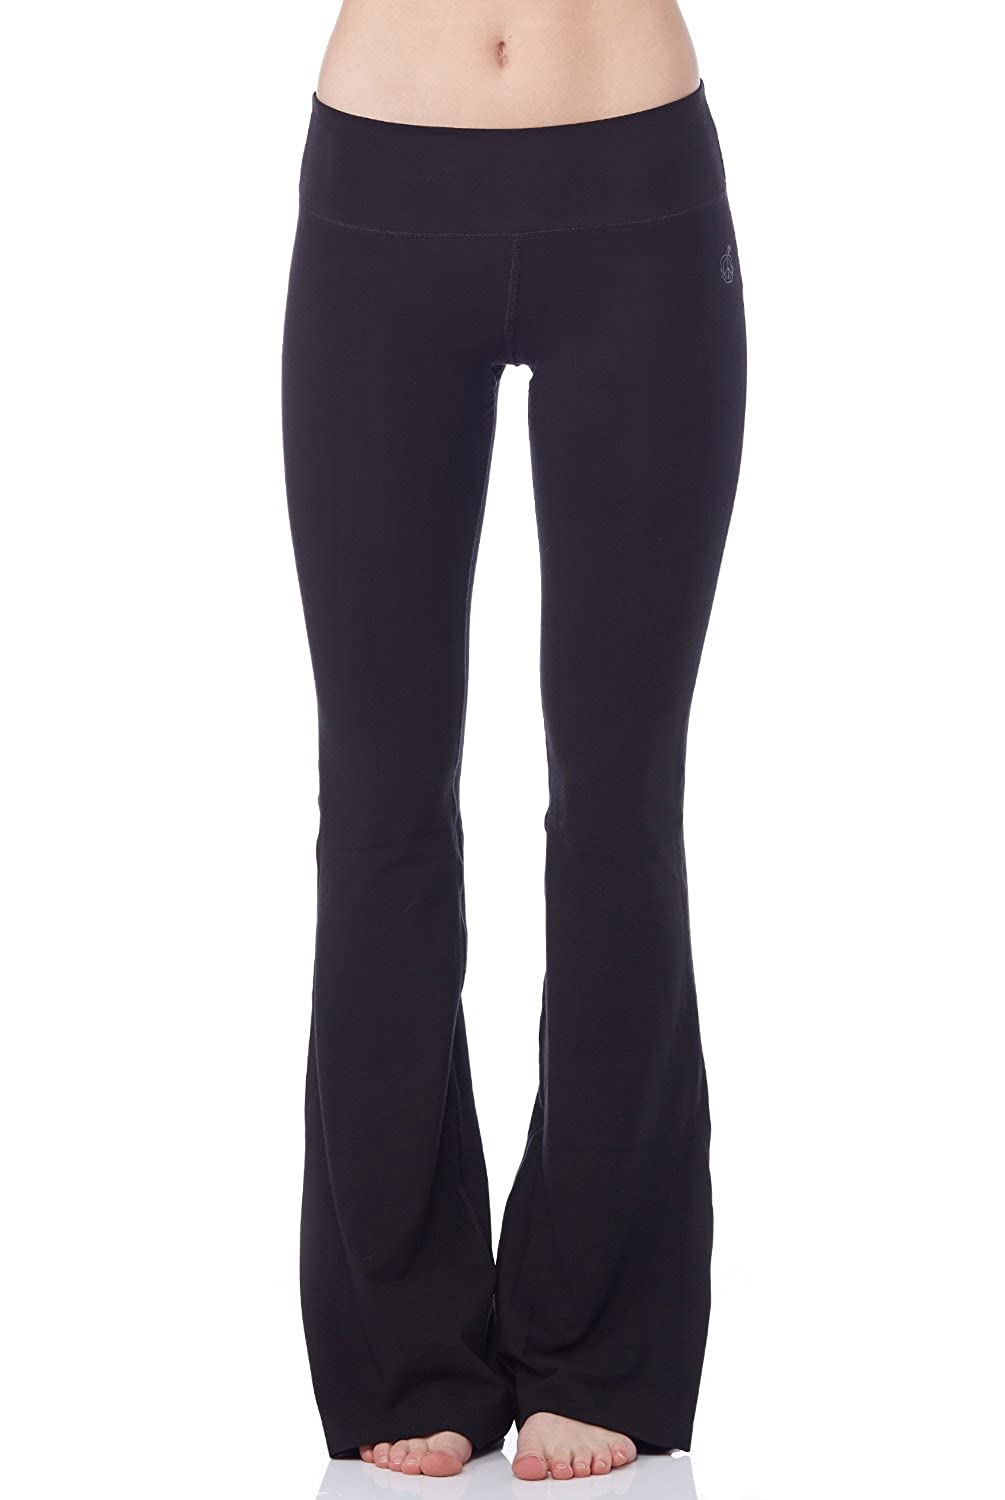 "new arrivals buy online rich and magnificent Green Apple Womens Active - 33"" Stretch Bamboo Fitted Bootcut Yoga Pant –  S, M, L,"